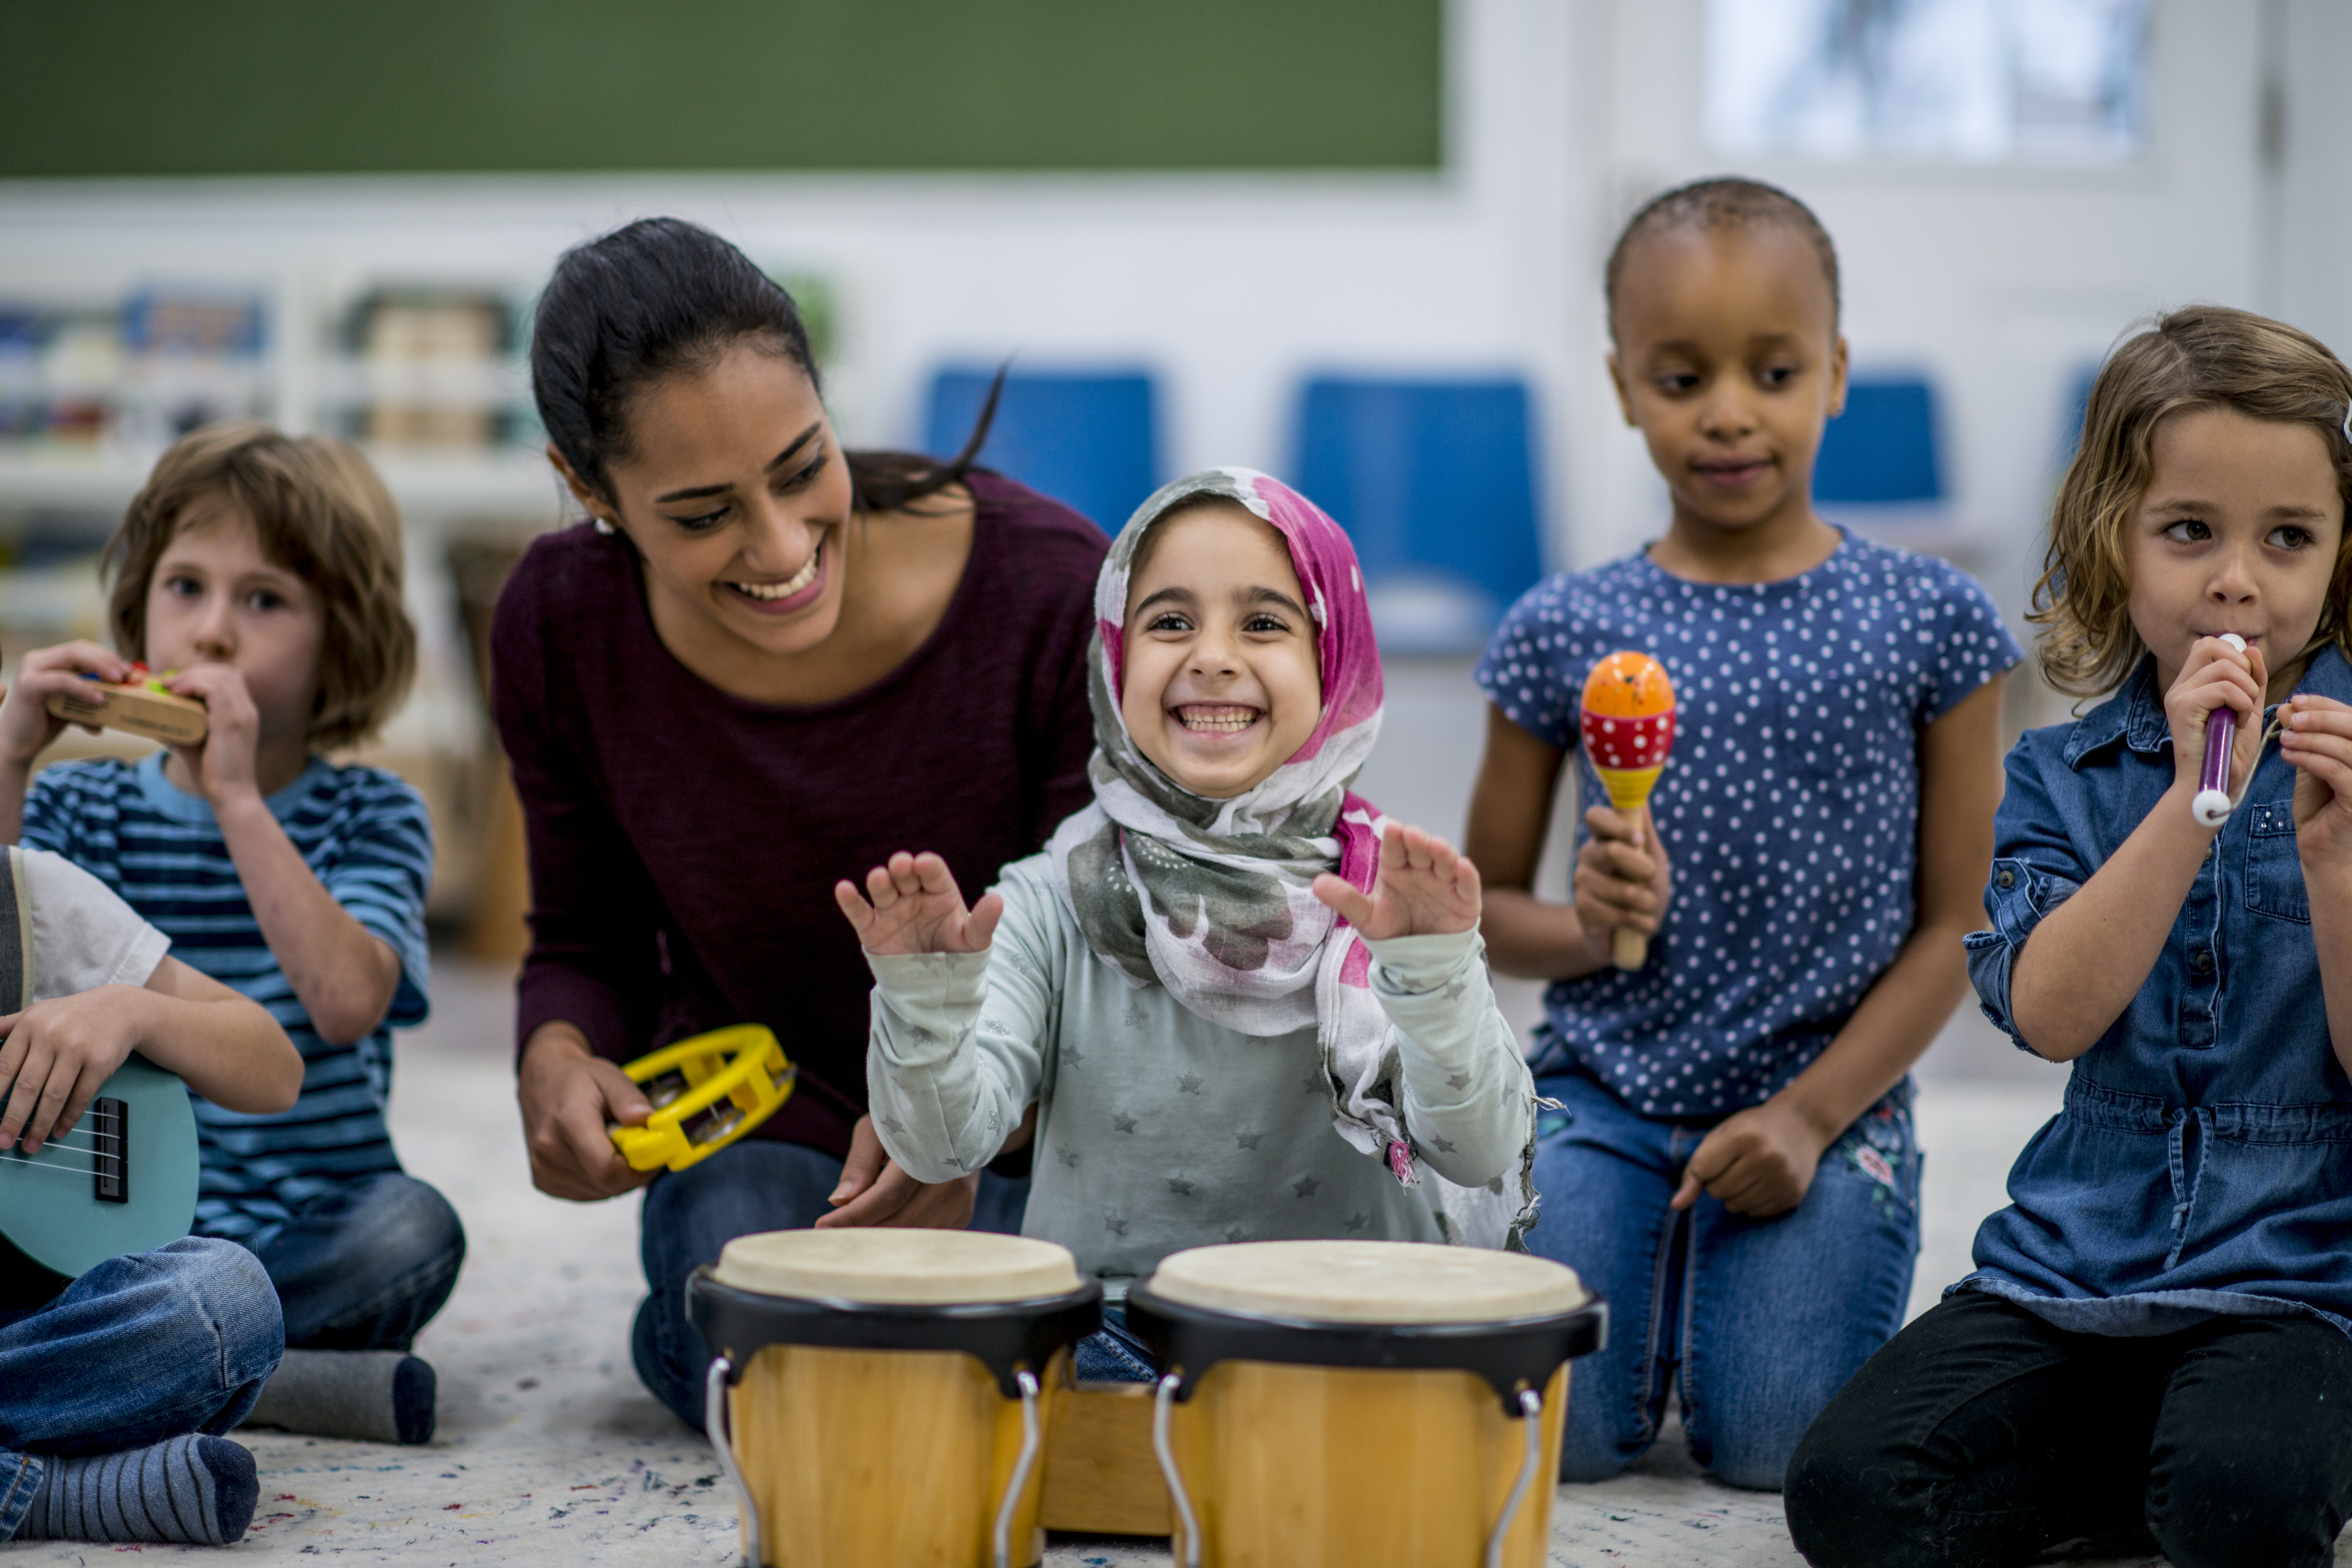 Playing Instruments: A multi-ethnic group of young school children are indoors in their classroom. Their teacher is watching them playing instruments together. The instruments include drums, maracas, and a guitar.